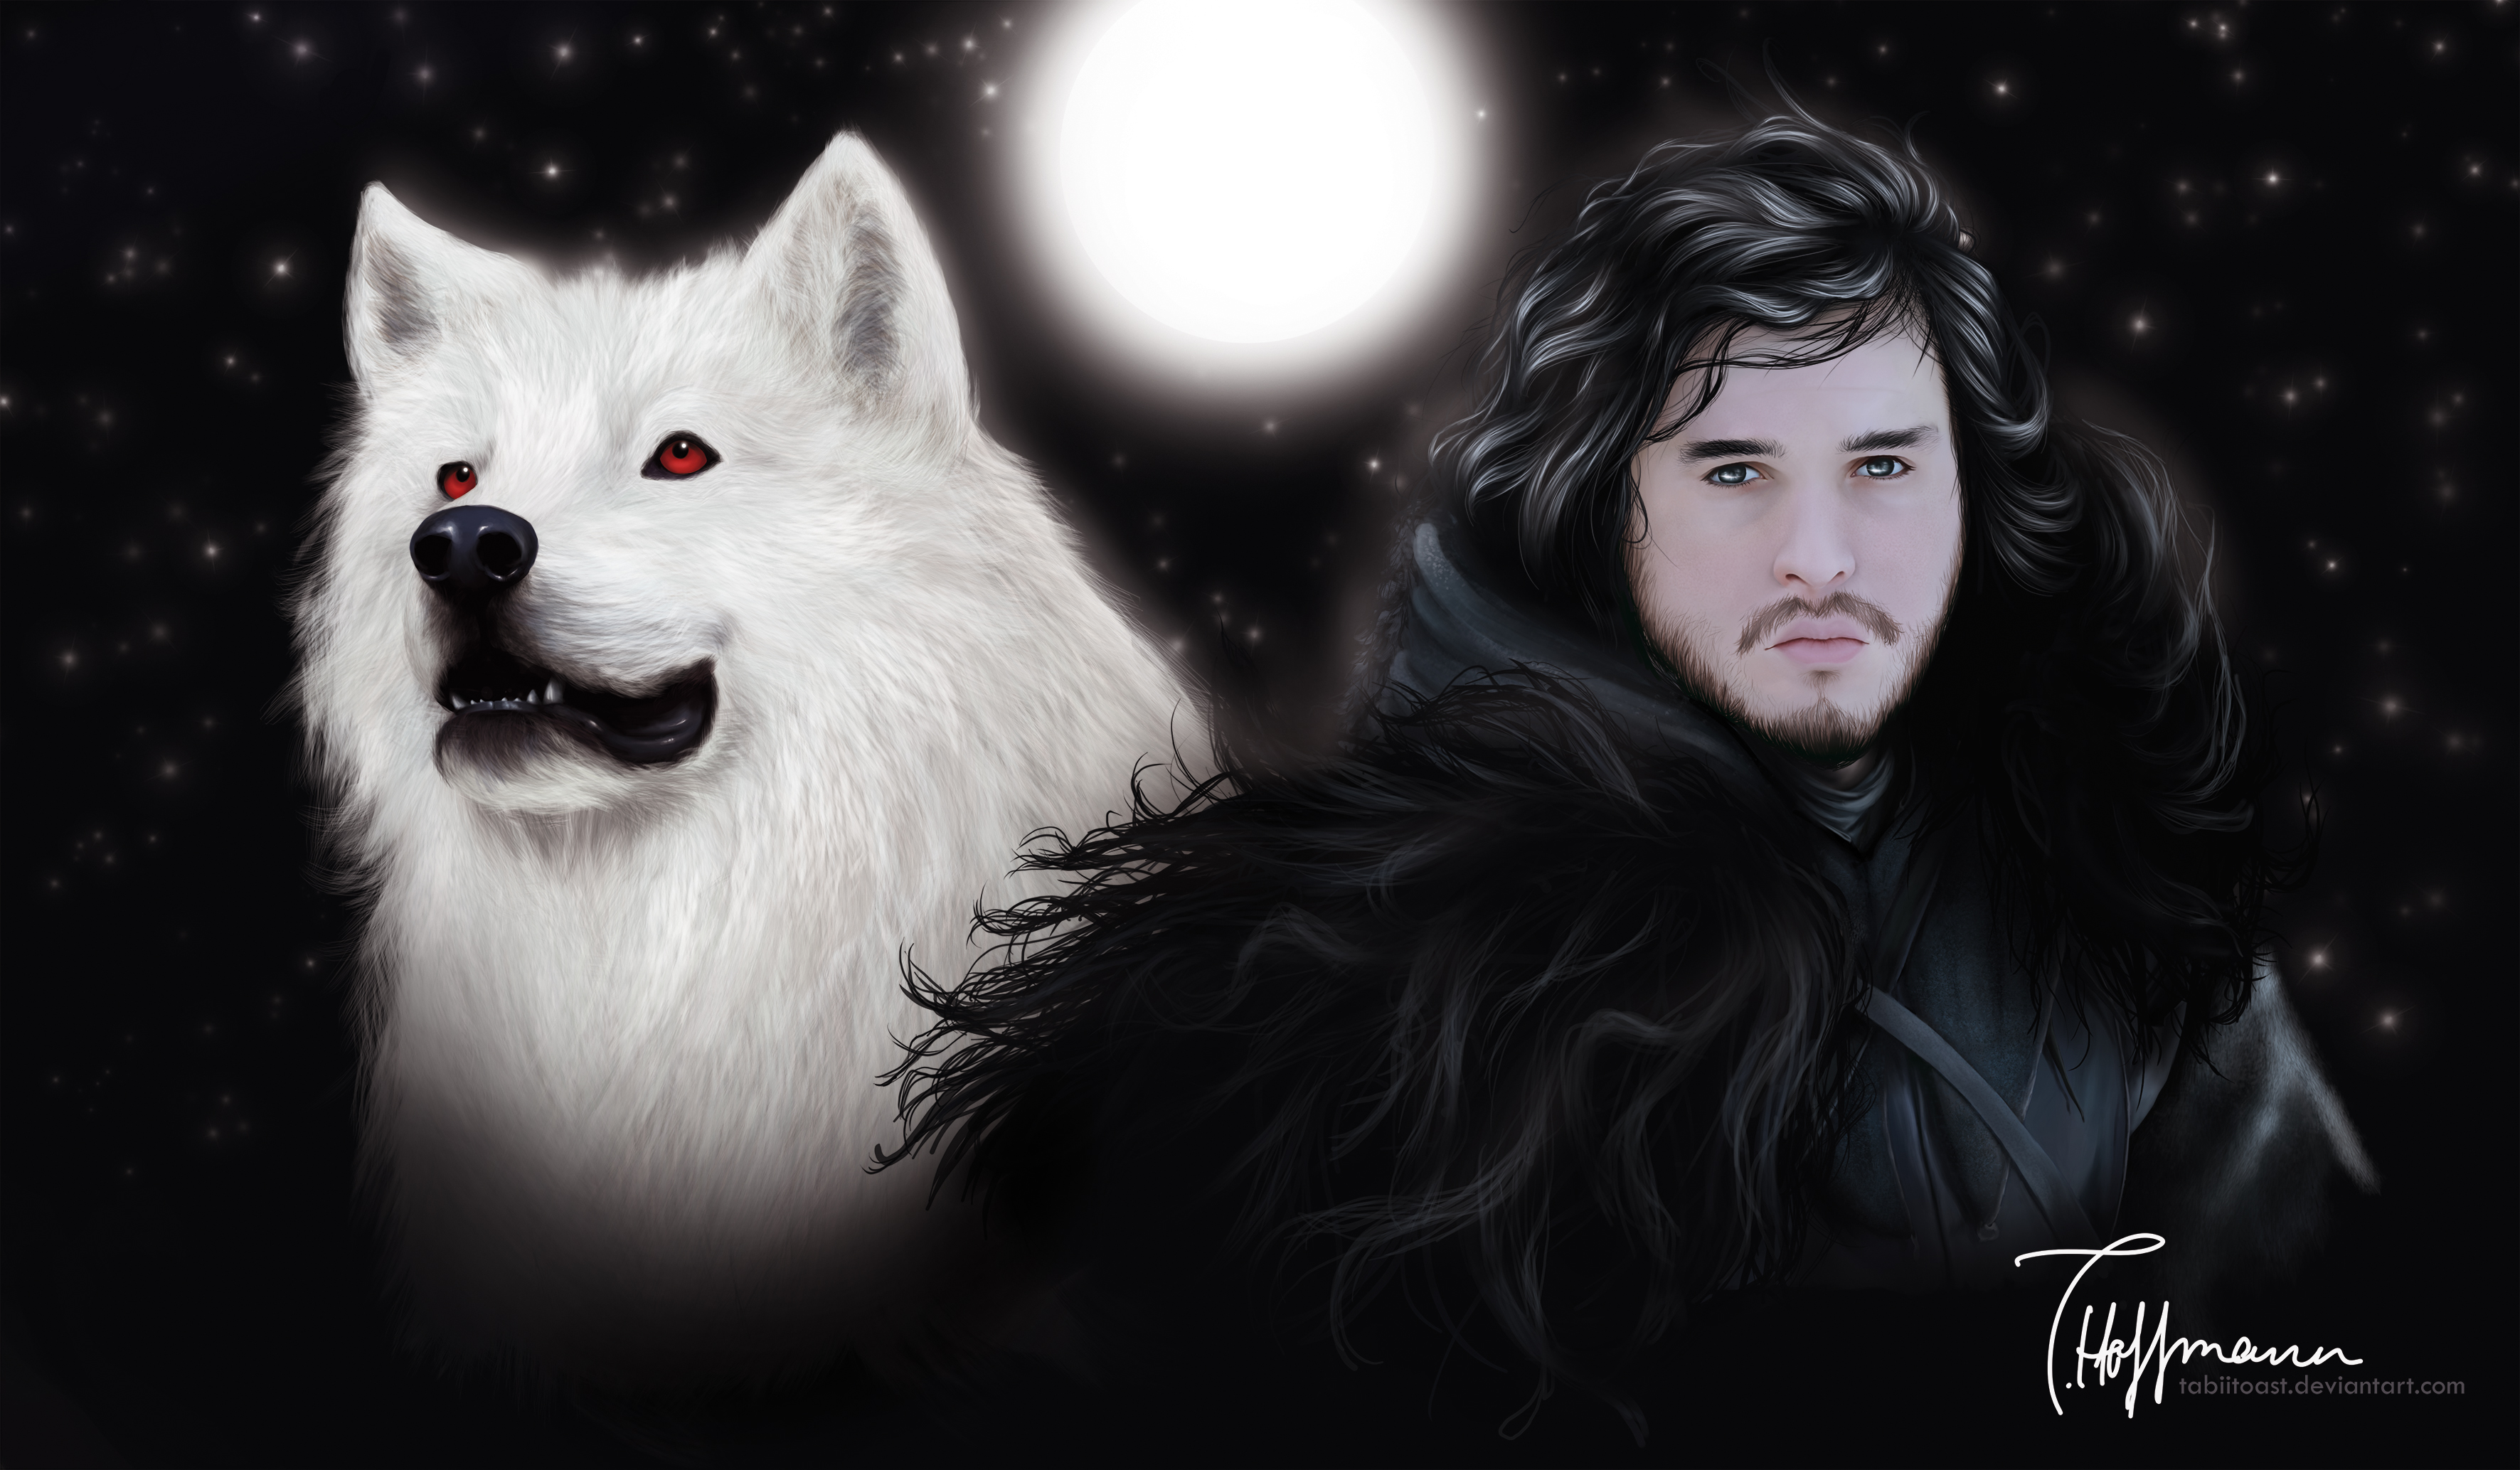 Game Of Thrones: Jon And Ghost By TabiiToast On DeviantArt